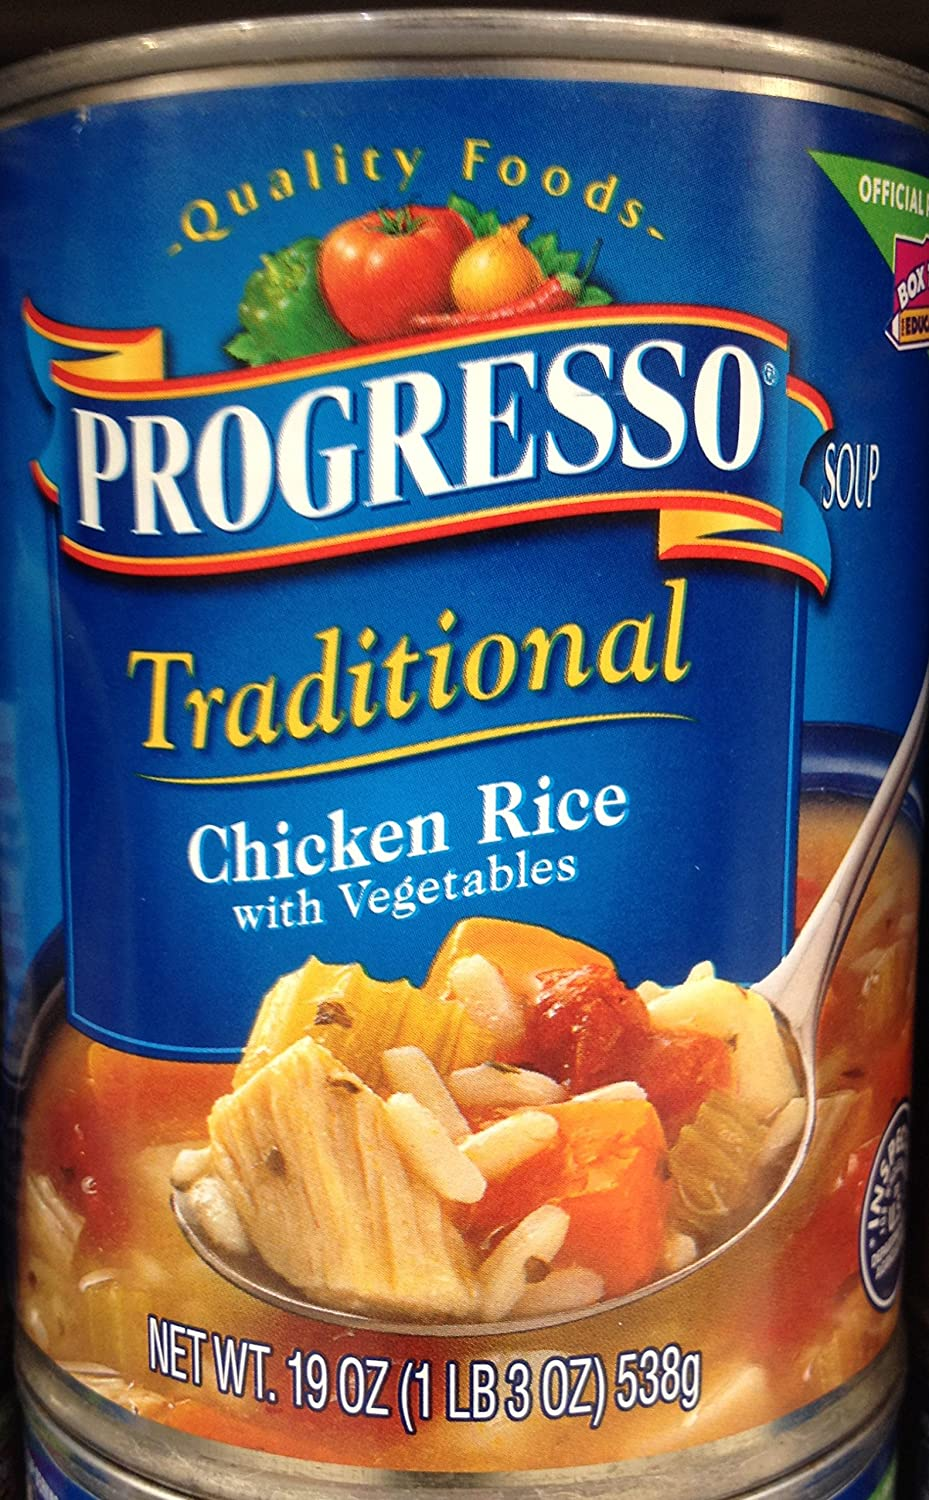 Progresso Traditional Chicken Rice with Vegetables Soup 19oz Can (Pack of 5)